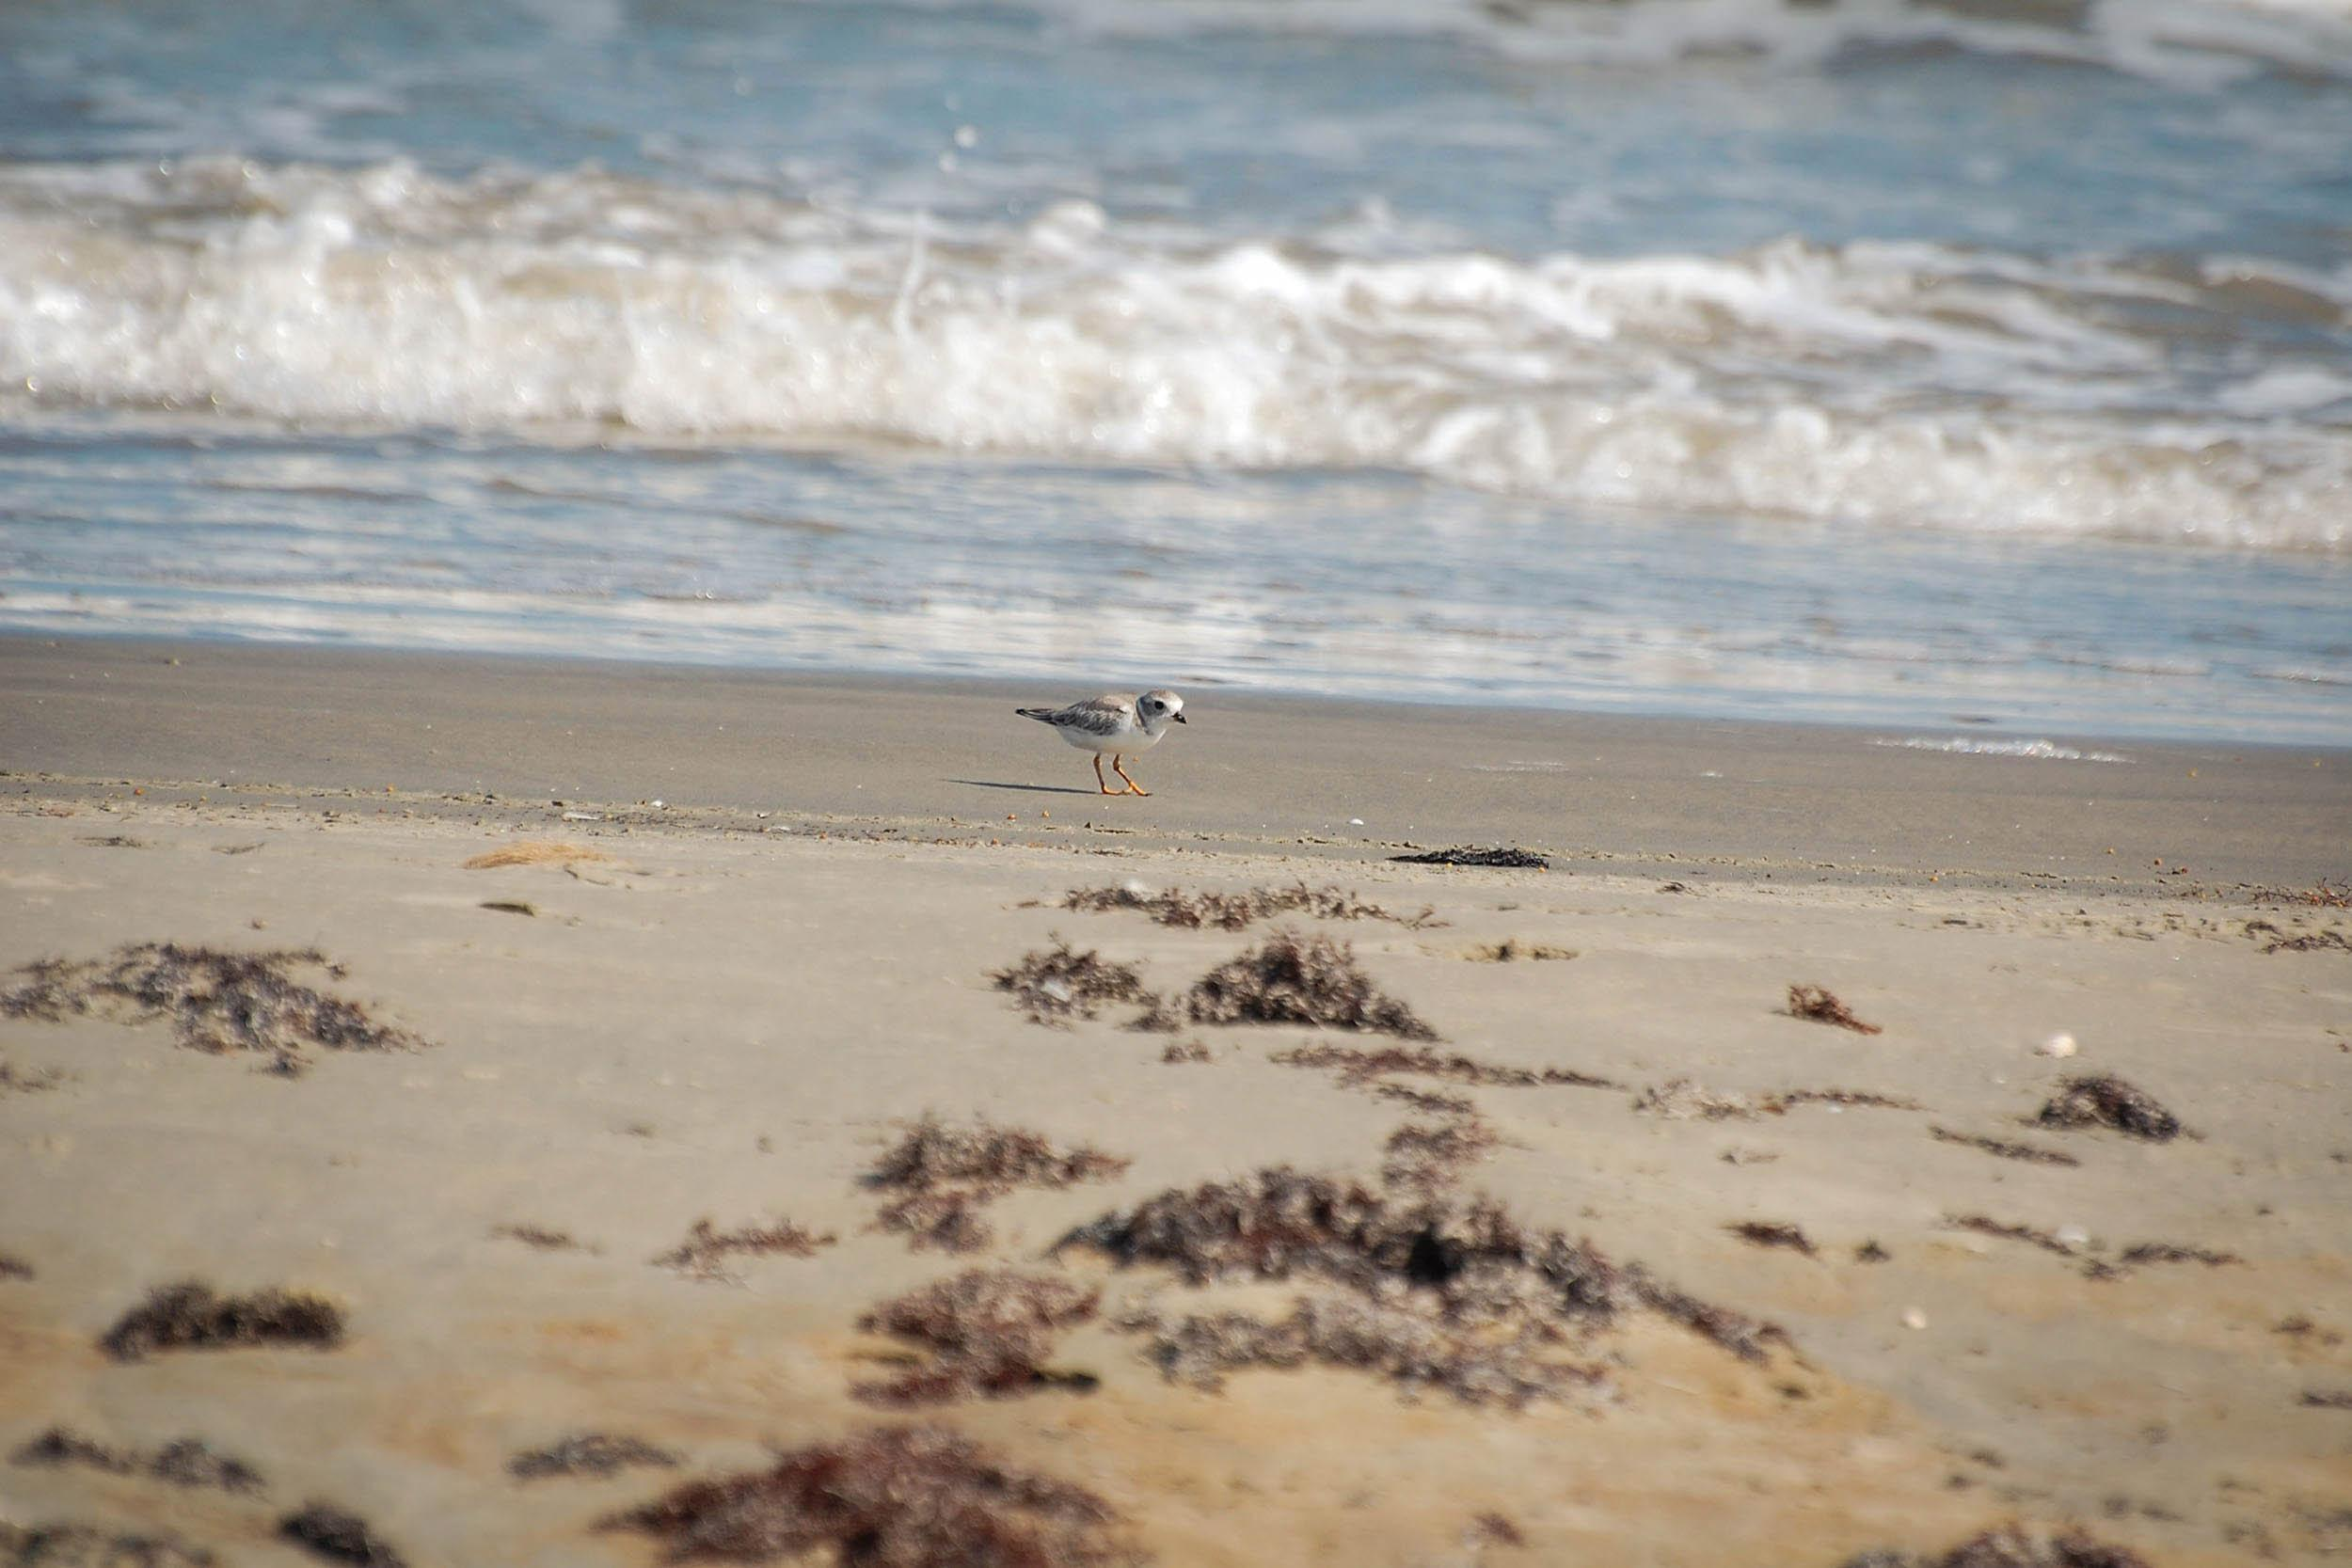 A piping plover feeds on the beach of Galveston Island, Texas